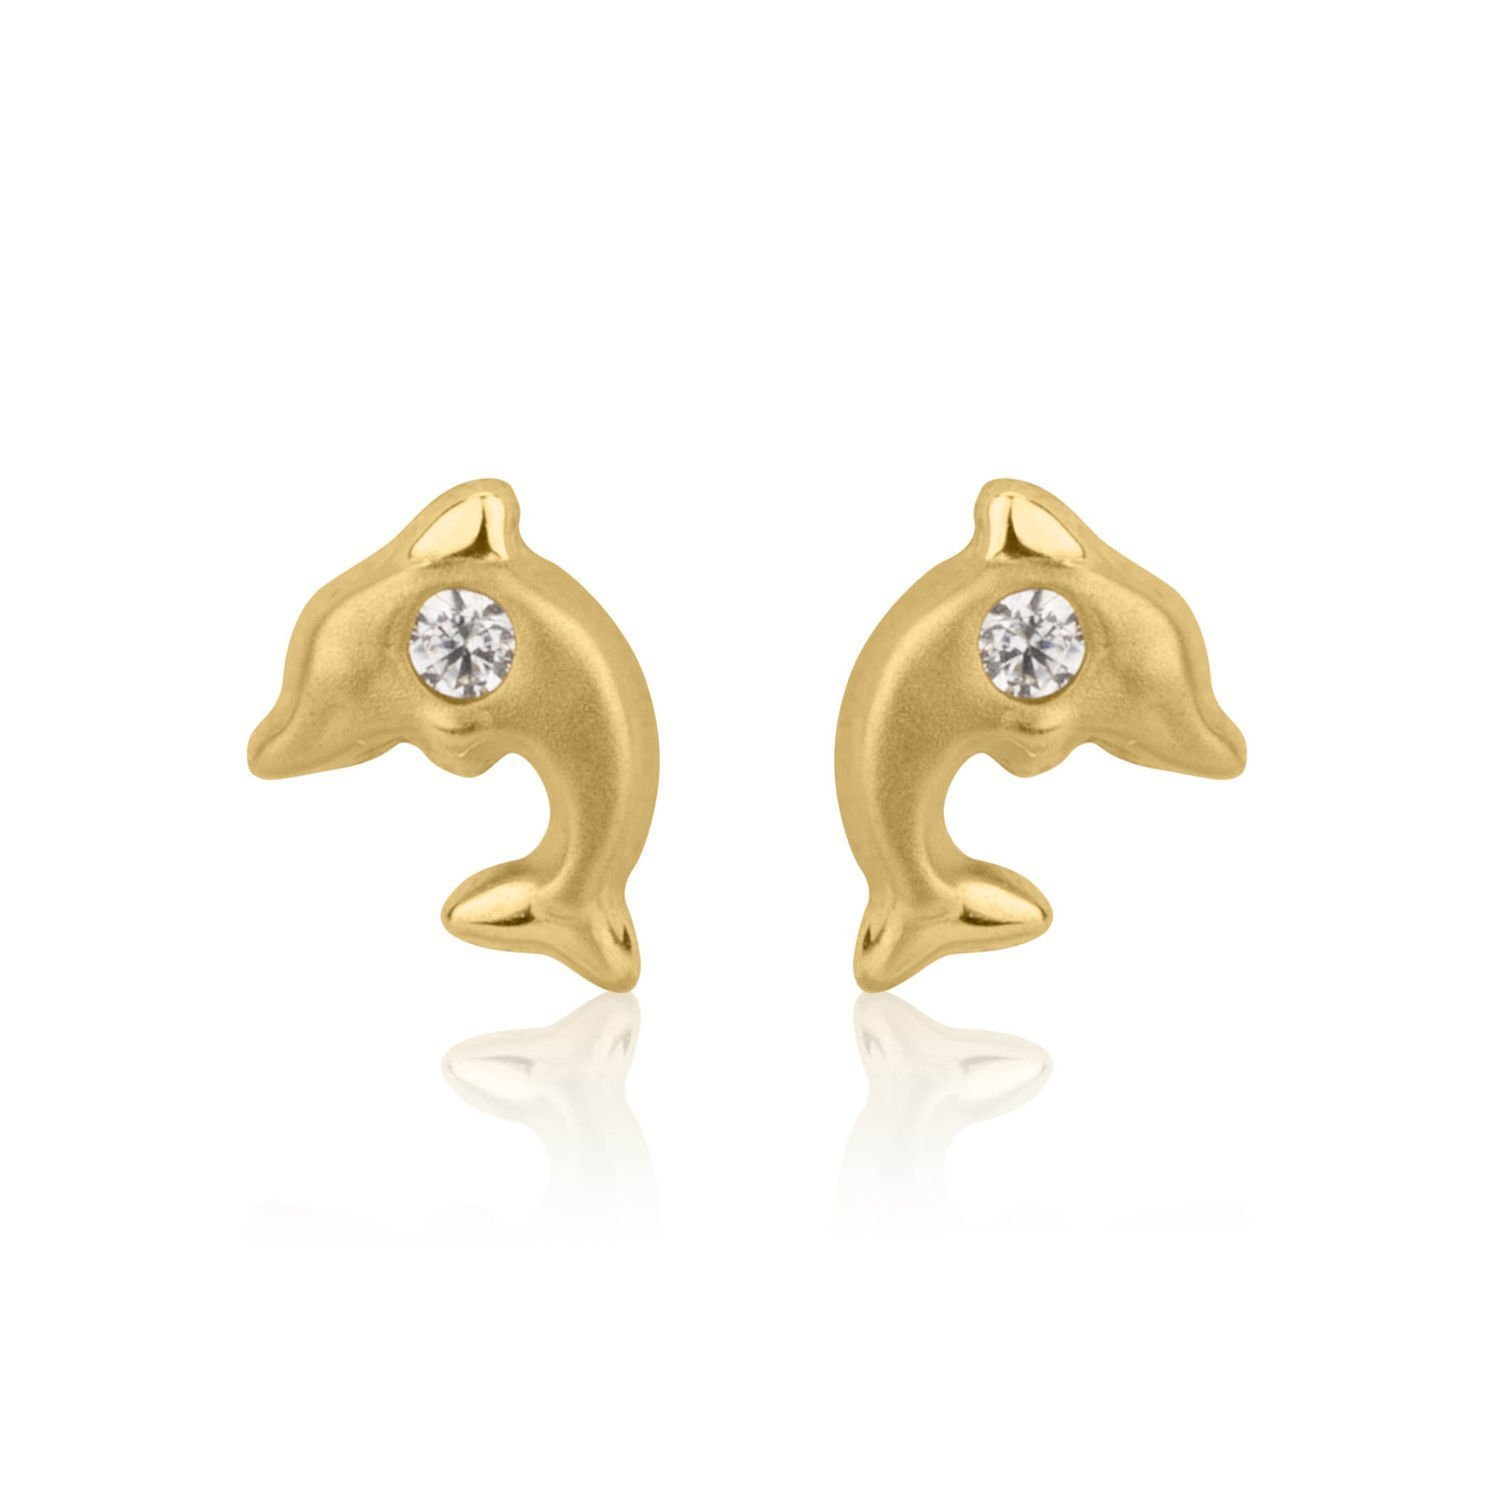 14K Fine Yellow Gold Cubic Zirconia Dolphin Screw Back Stud Earrings for Girls Kids Gift Children